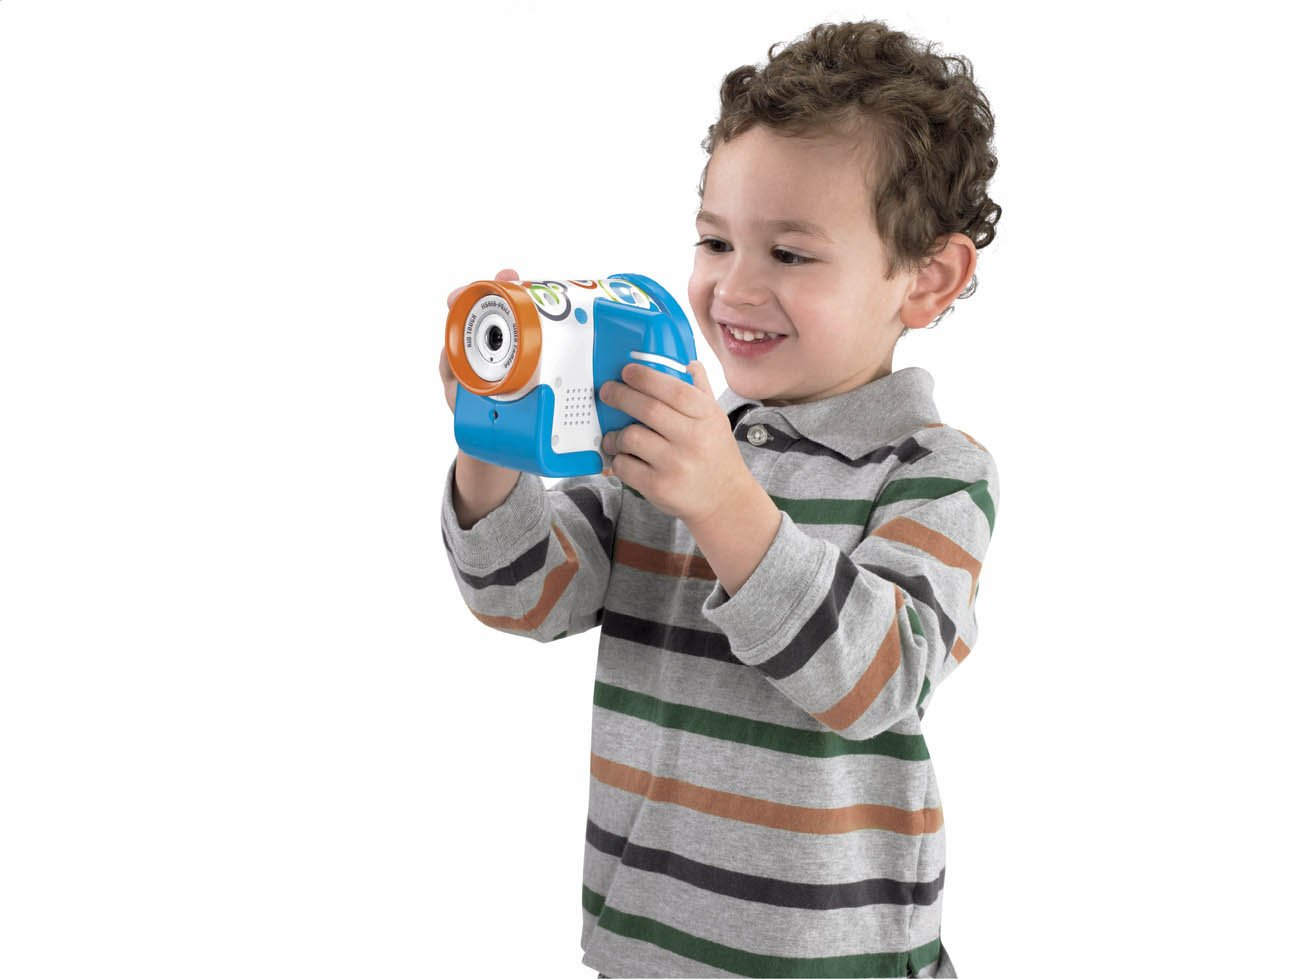 Fisher-Price Kid-Tough Video Camera - Blue T5154